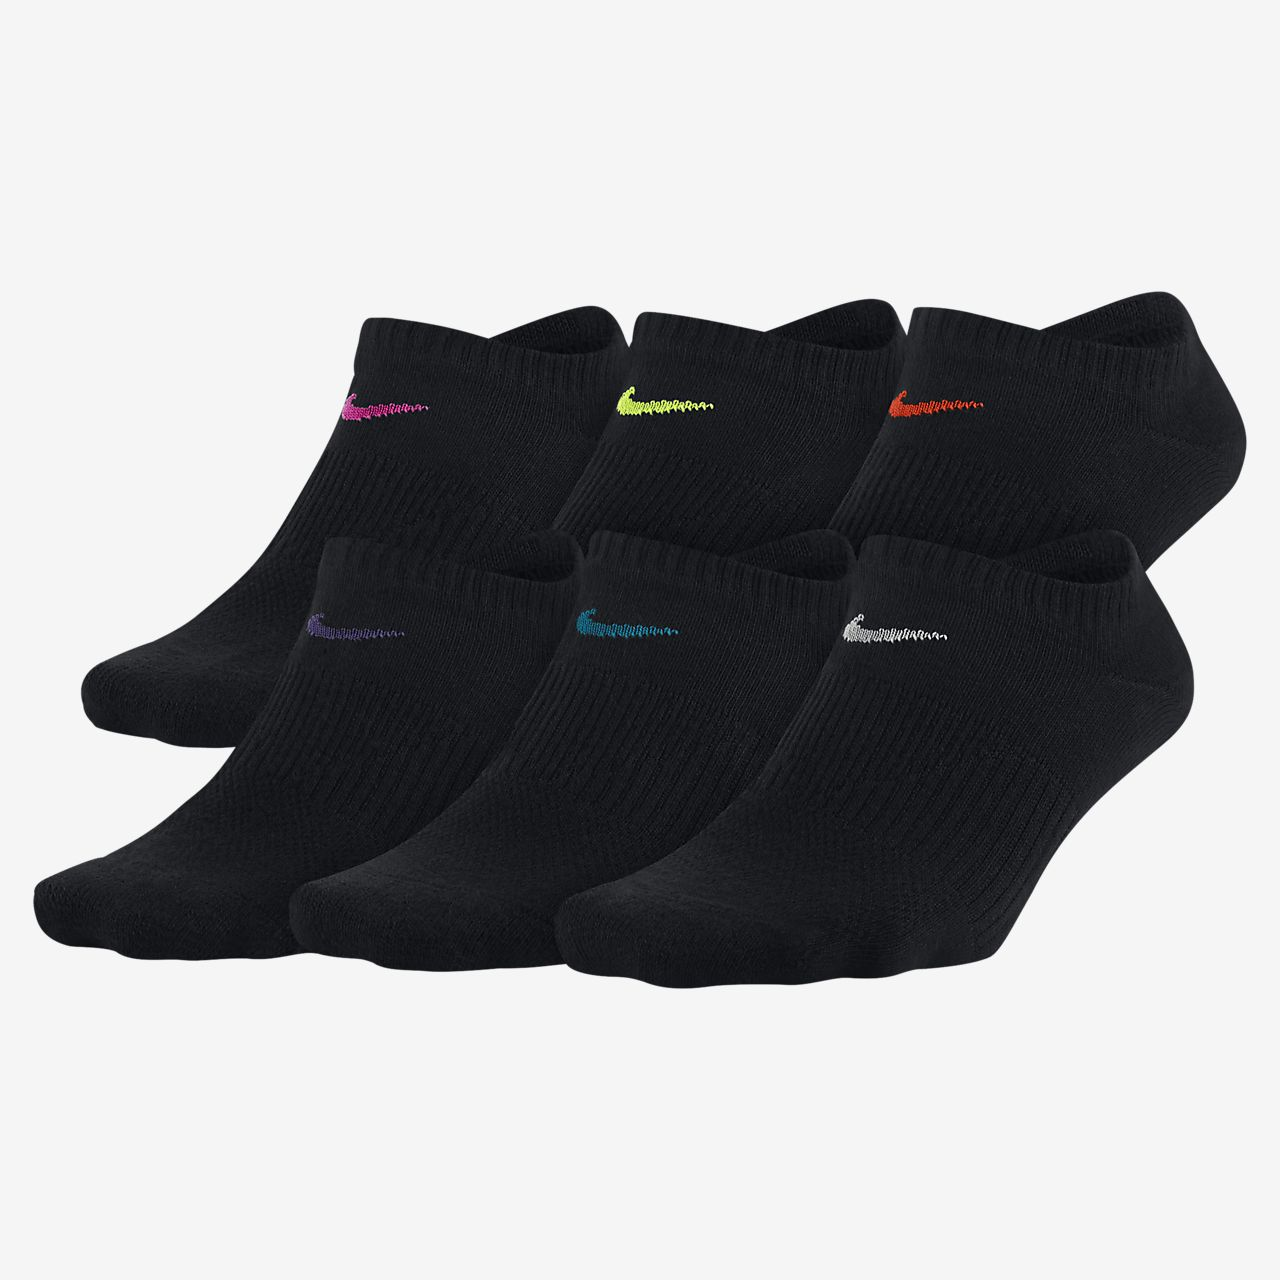 brand new 1ba34 2e34c ... Nike Performance Lightweight No-Show Training Socks (6 Pair)